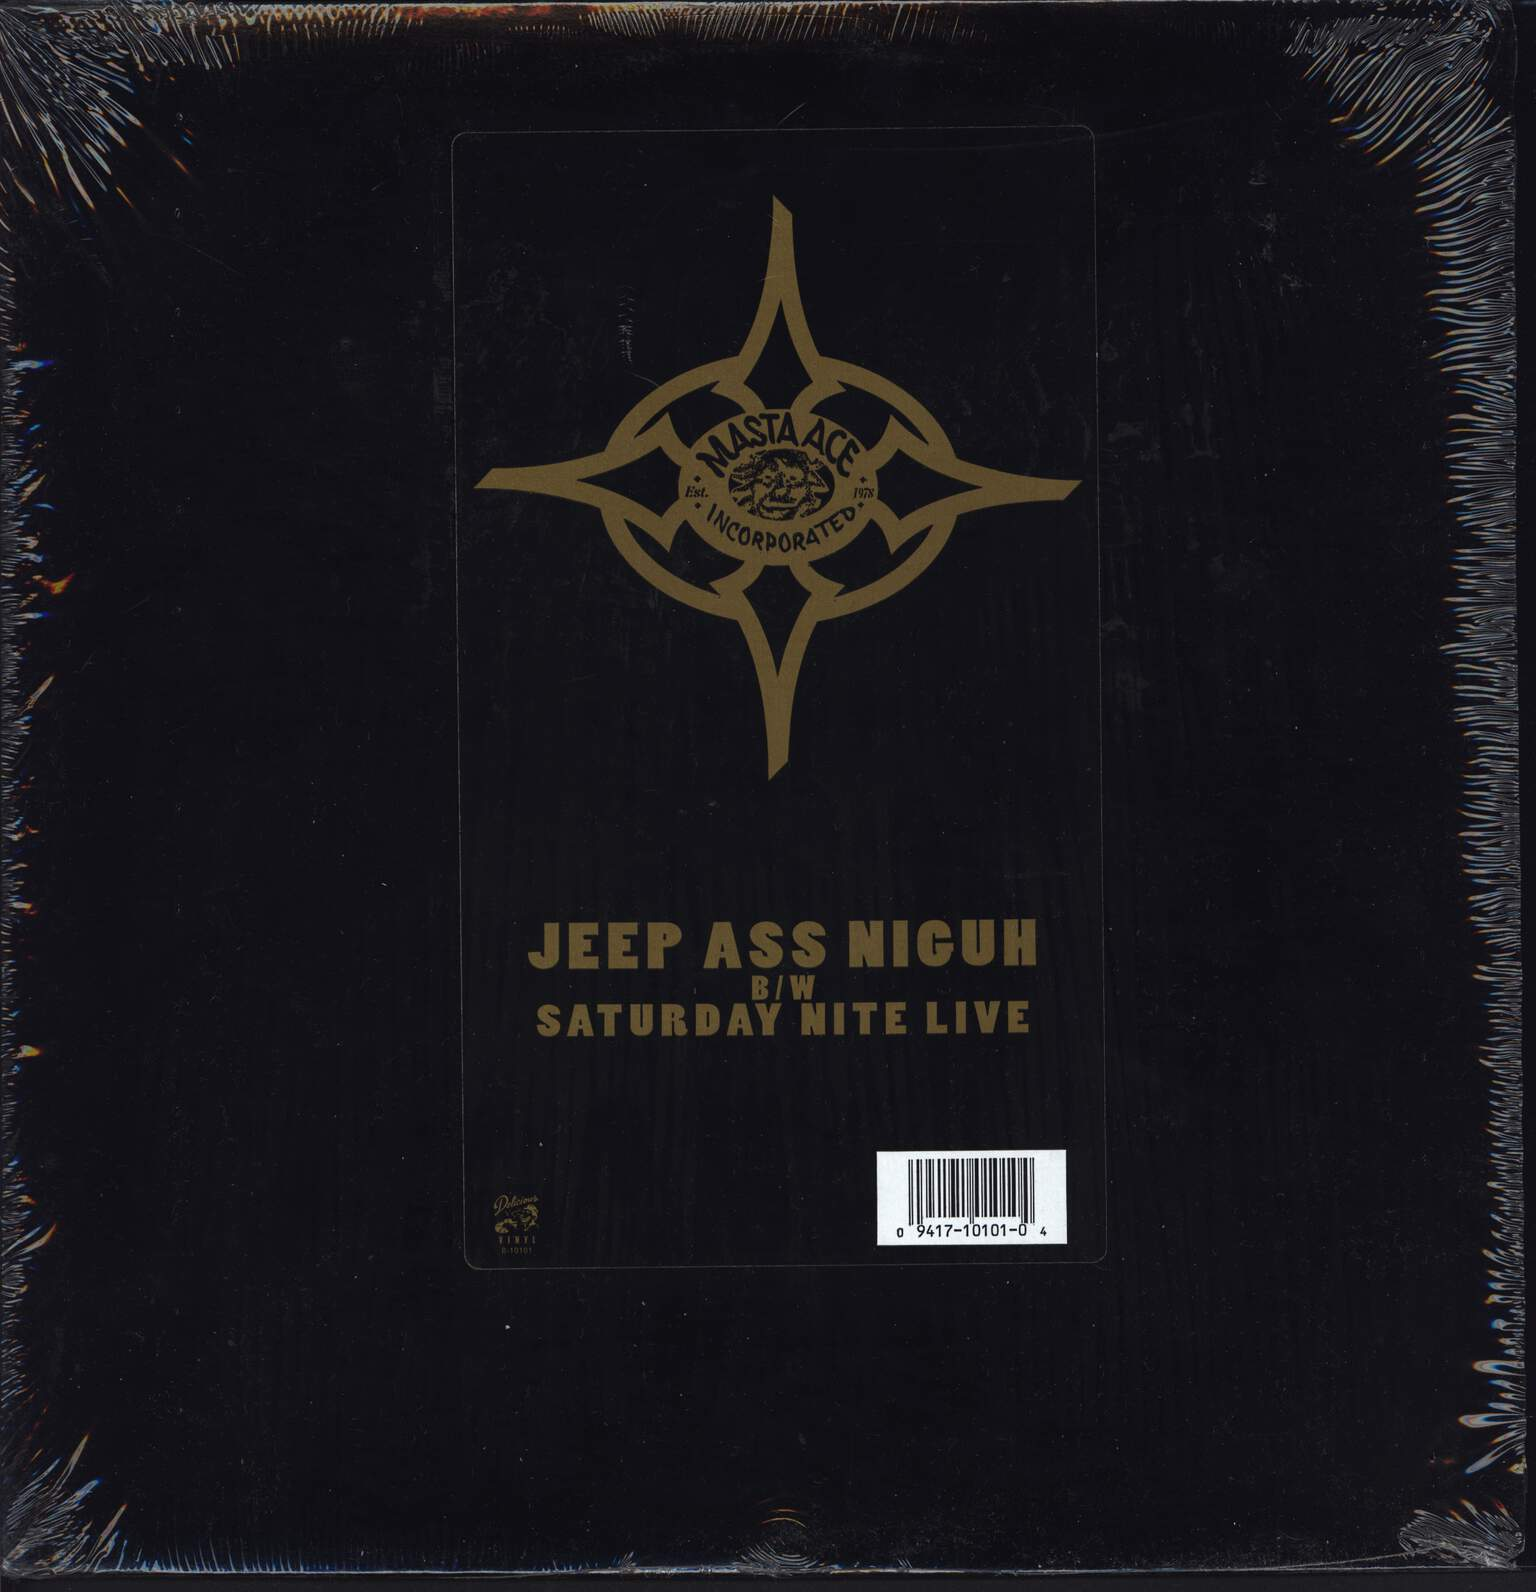 "Masta Ace Incorporated: Jeep Ass Niguh / Saturday Nite Live, 12"" Maxi Single (Vinyl)"